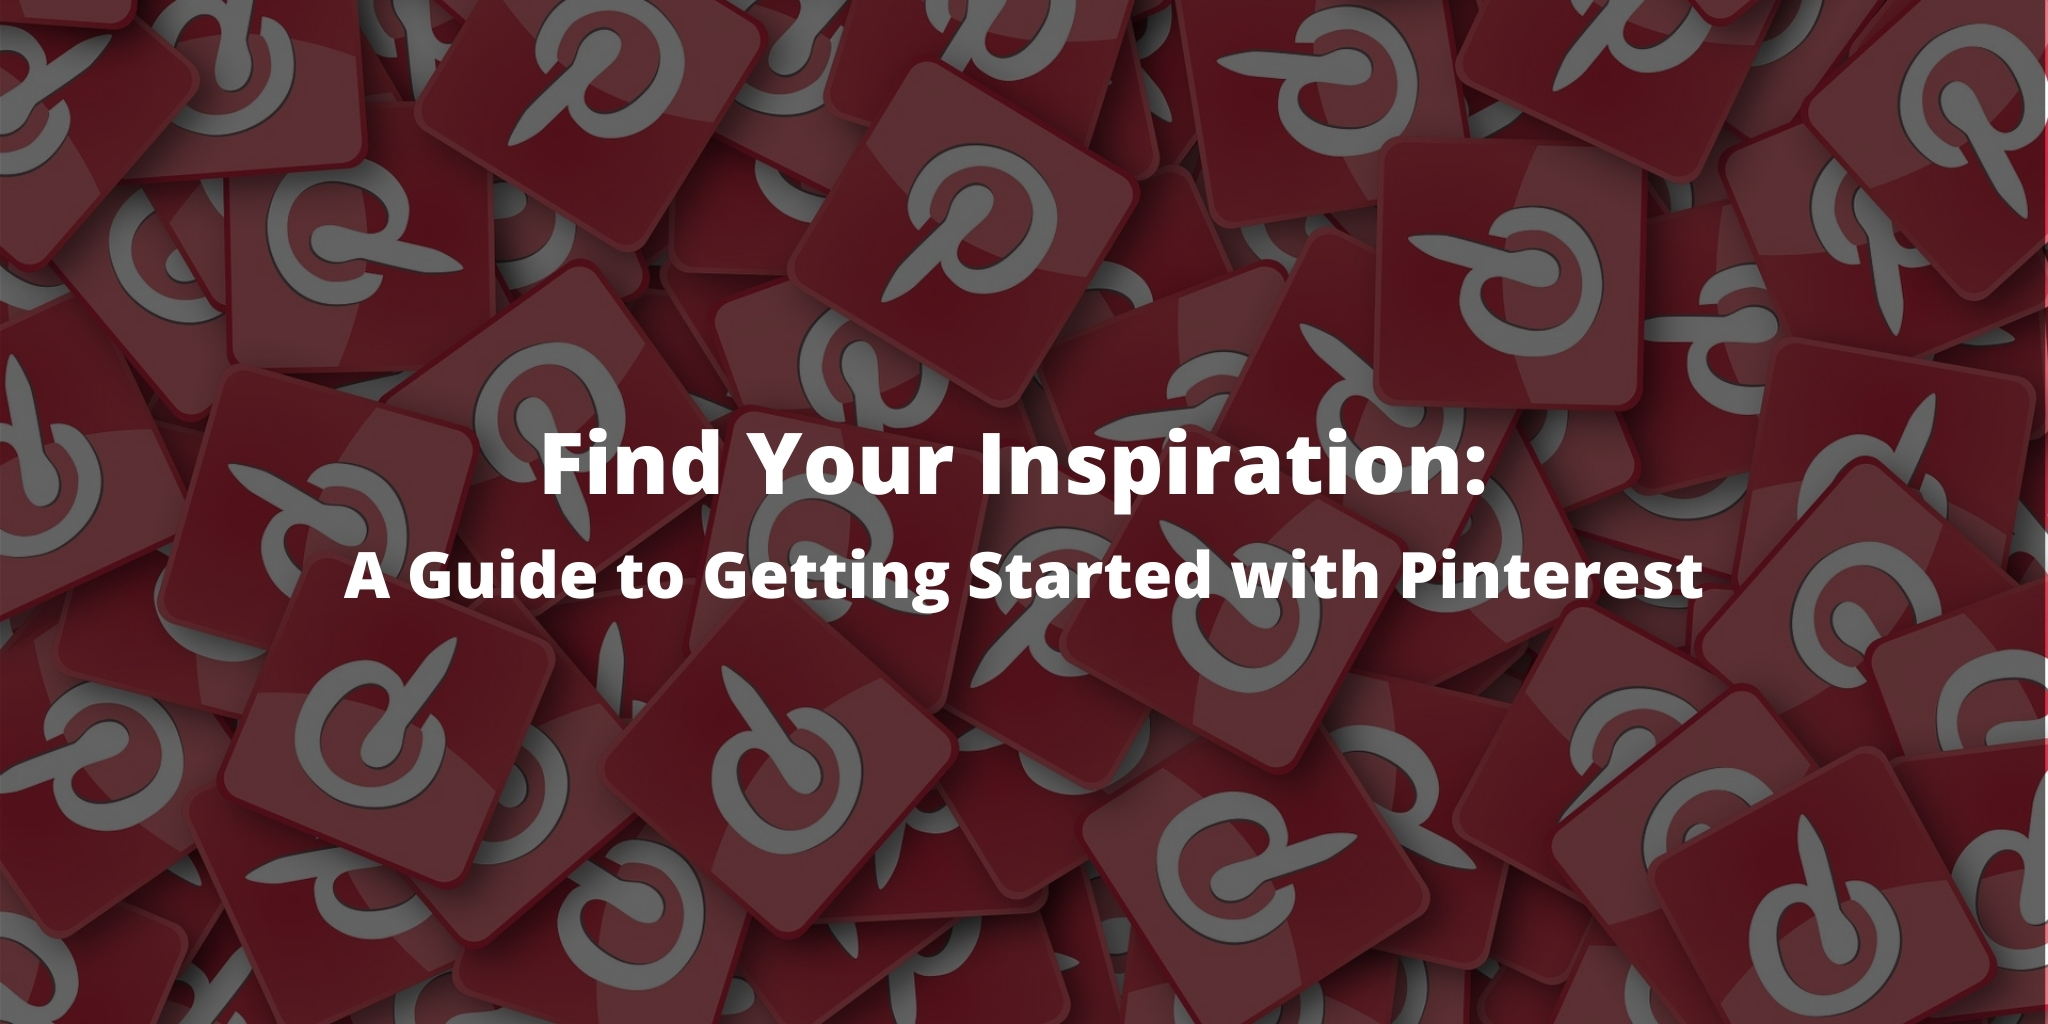 Find Your Inspiration: A Guide to Getting Started with Pinterest